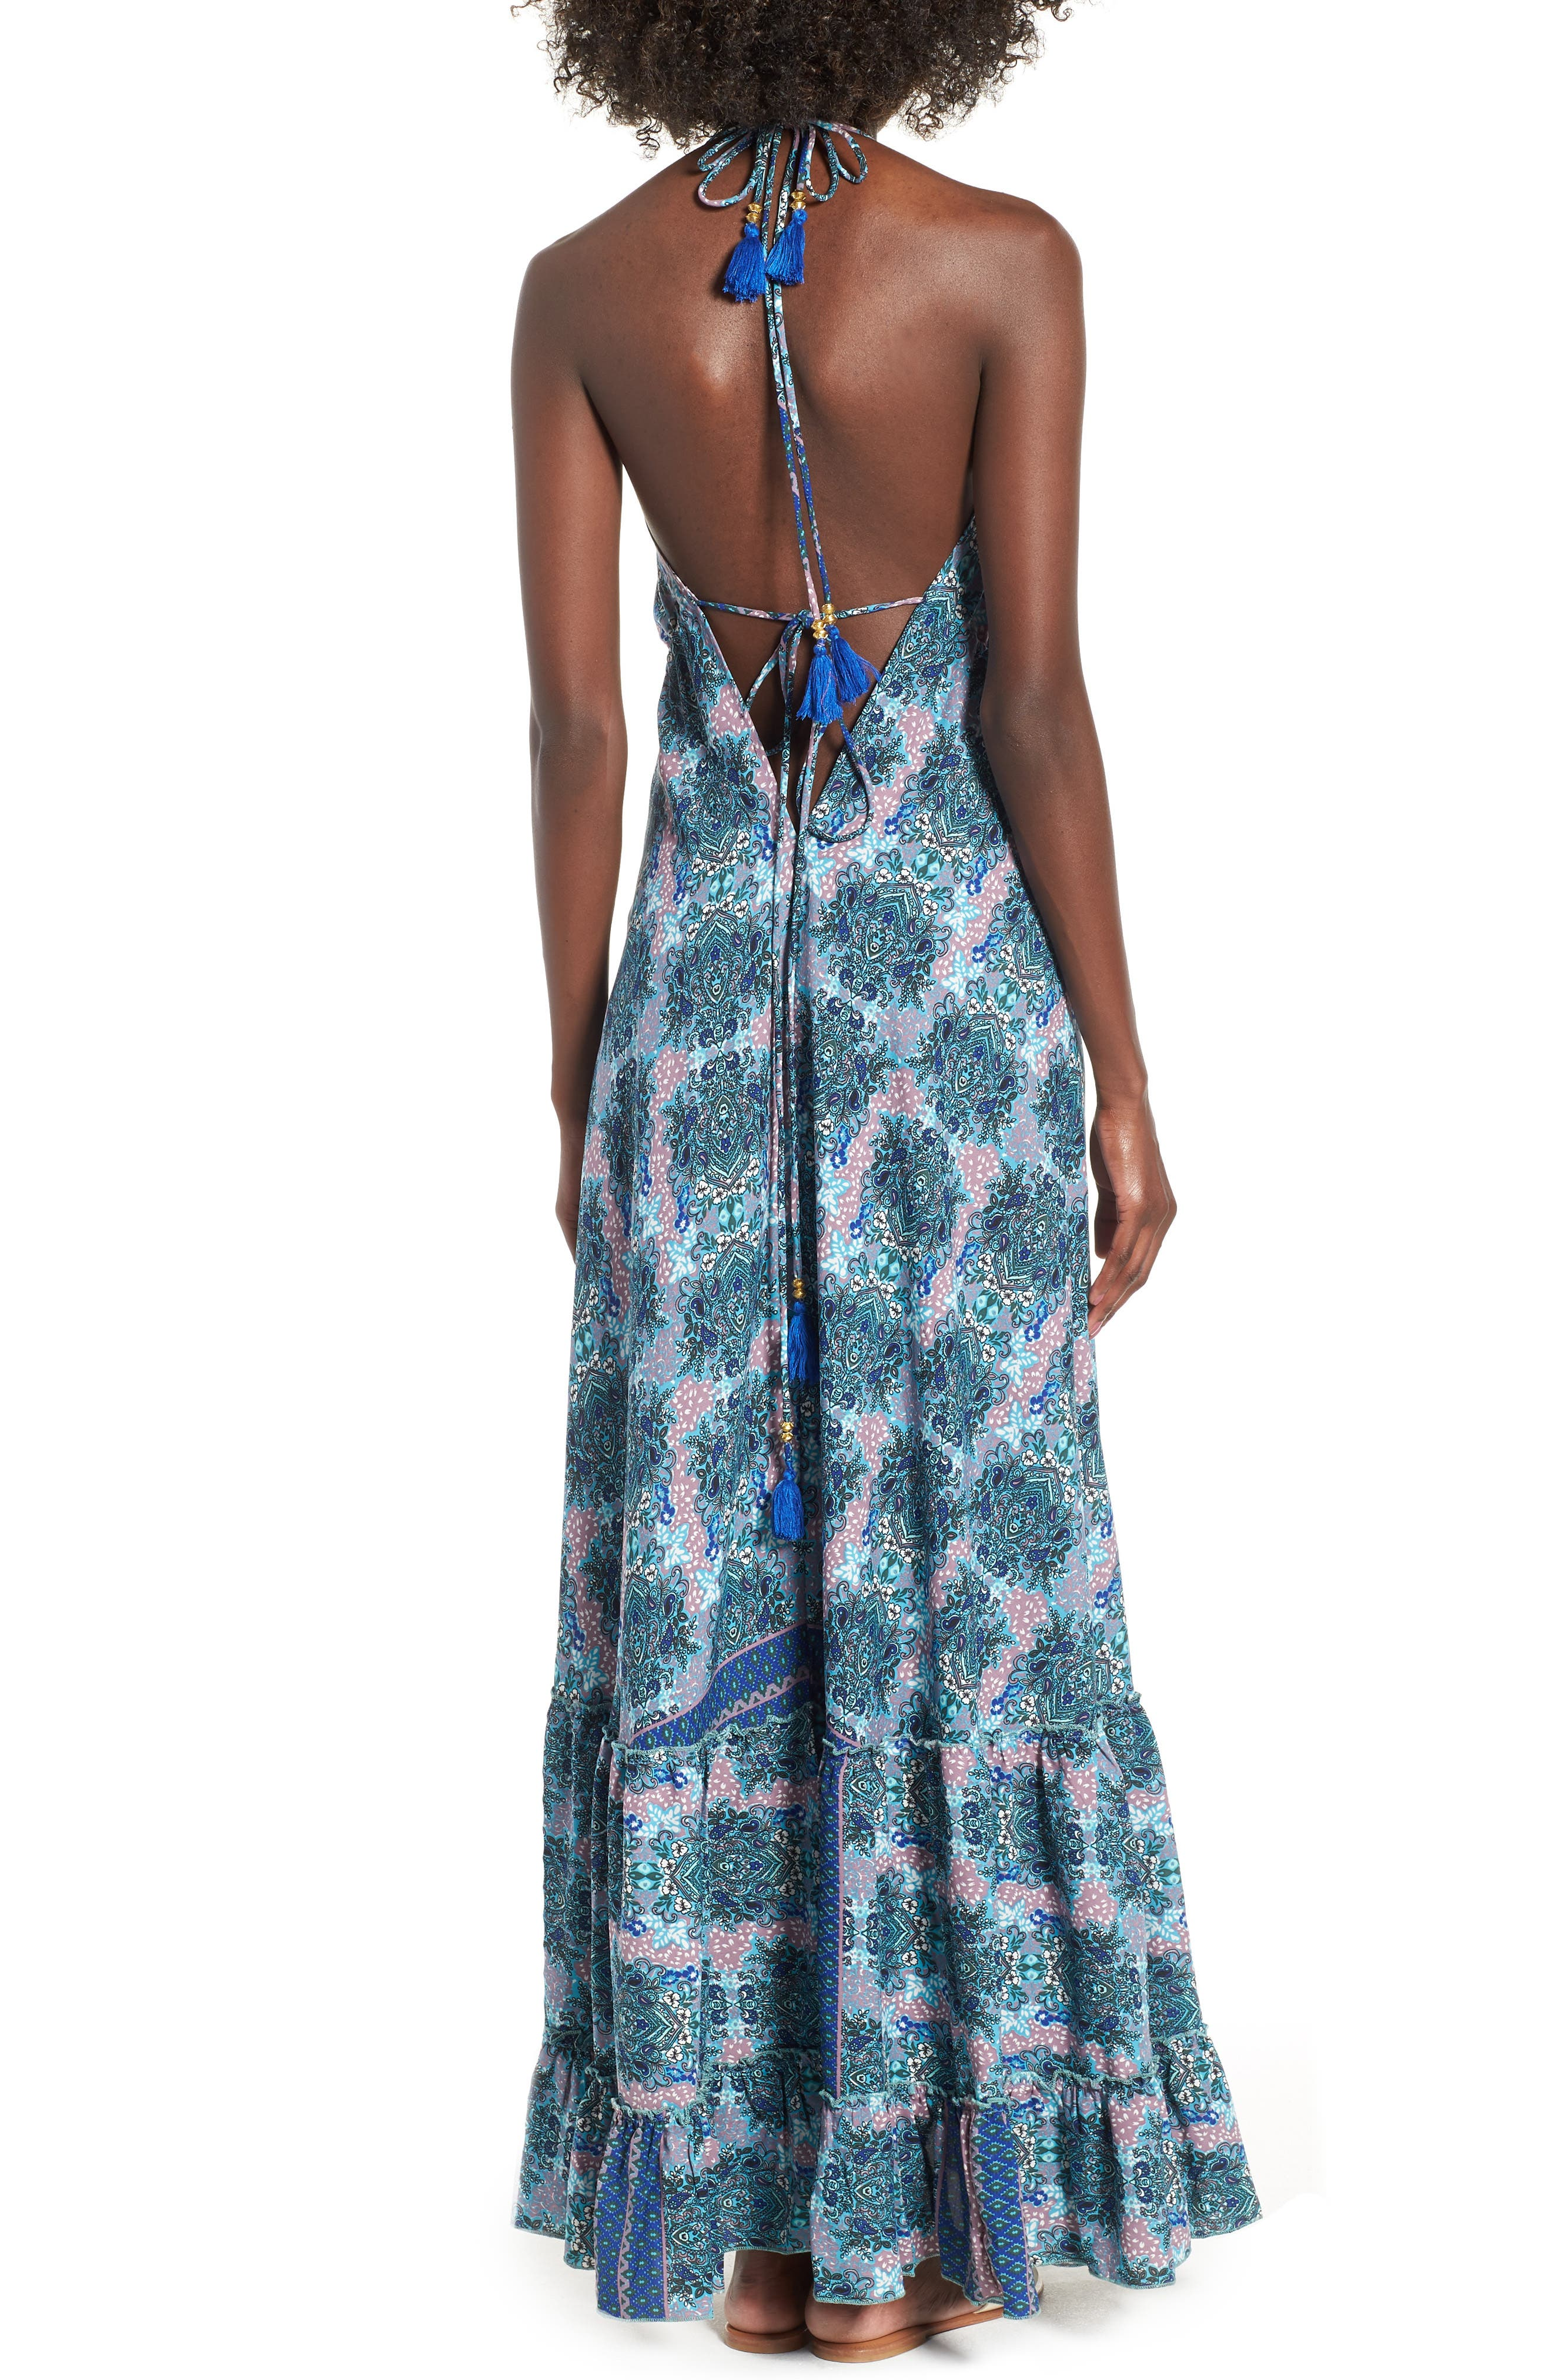 Poetic Dreams Halter Maxi Dress,                             Alternate thumbnail 3, color,                             Blue